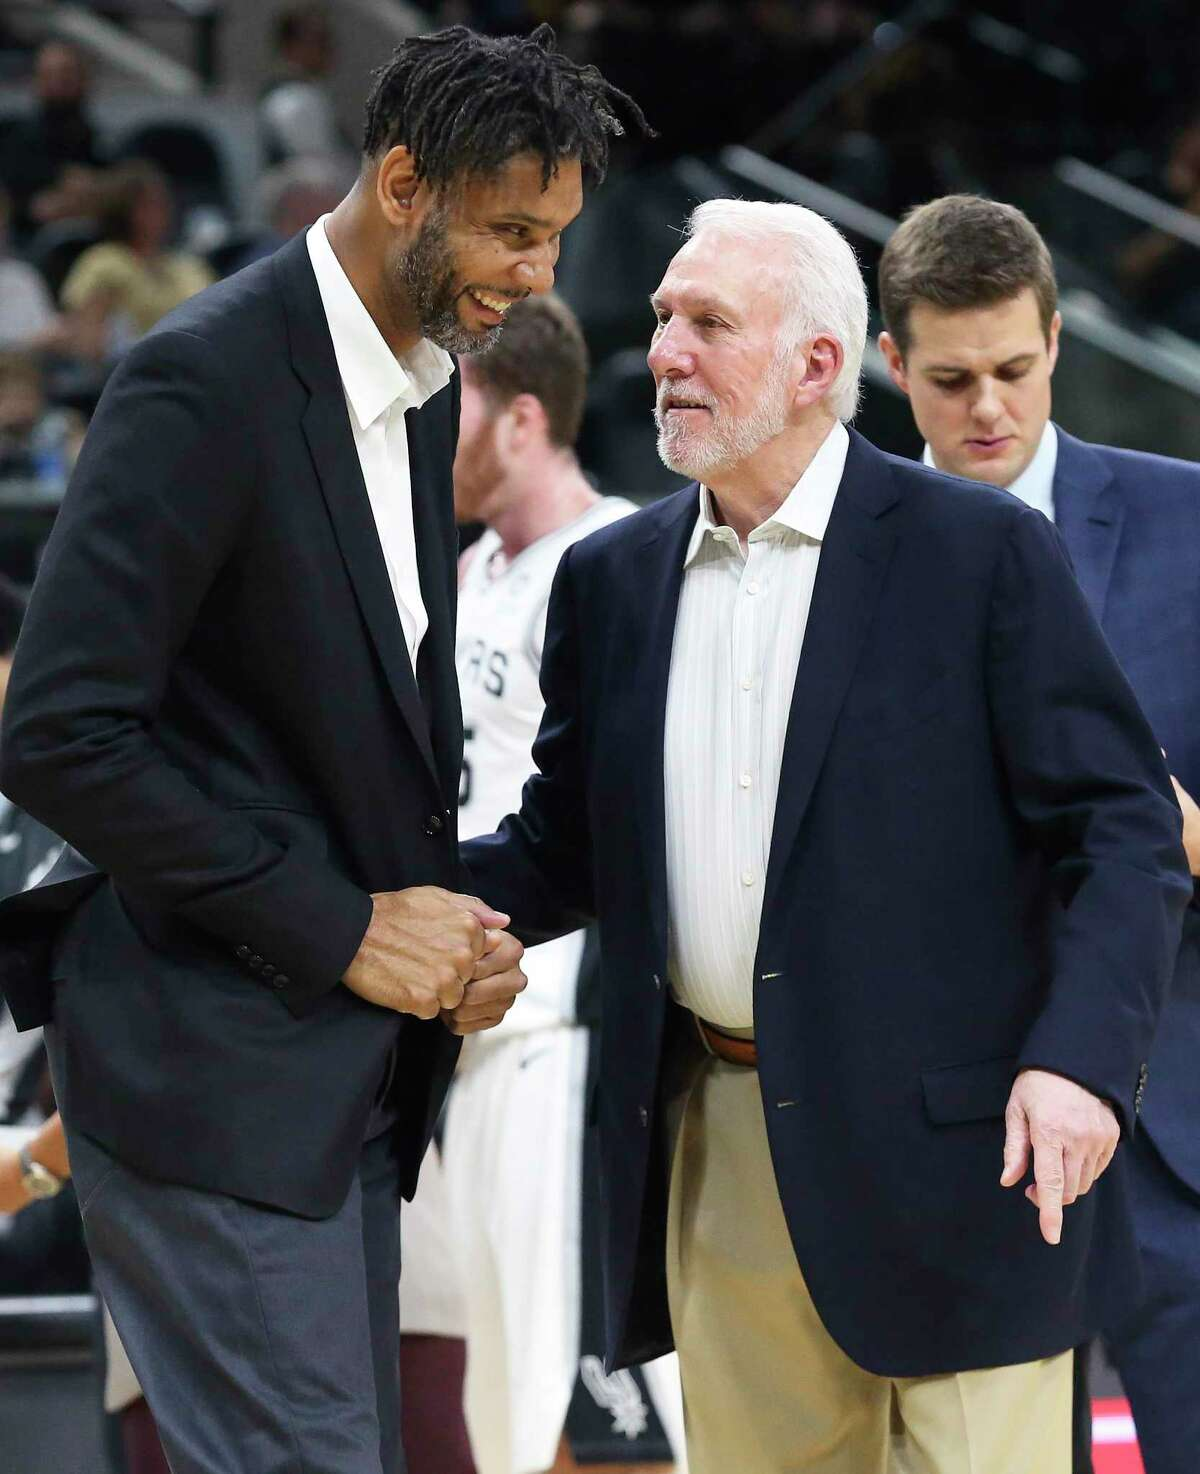 Off the court, Gregg Popovich and Tim Duncan recently came through for a fan. That's the Spurs way.